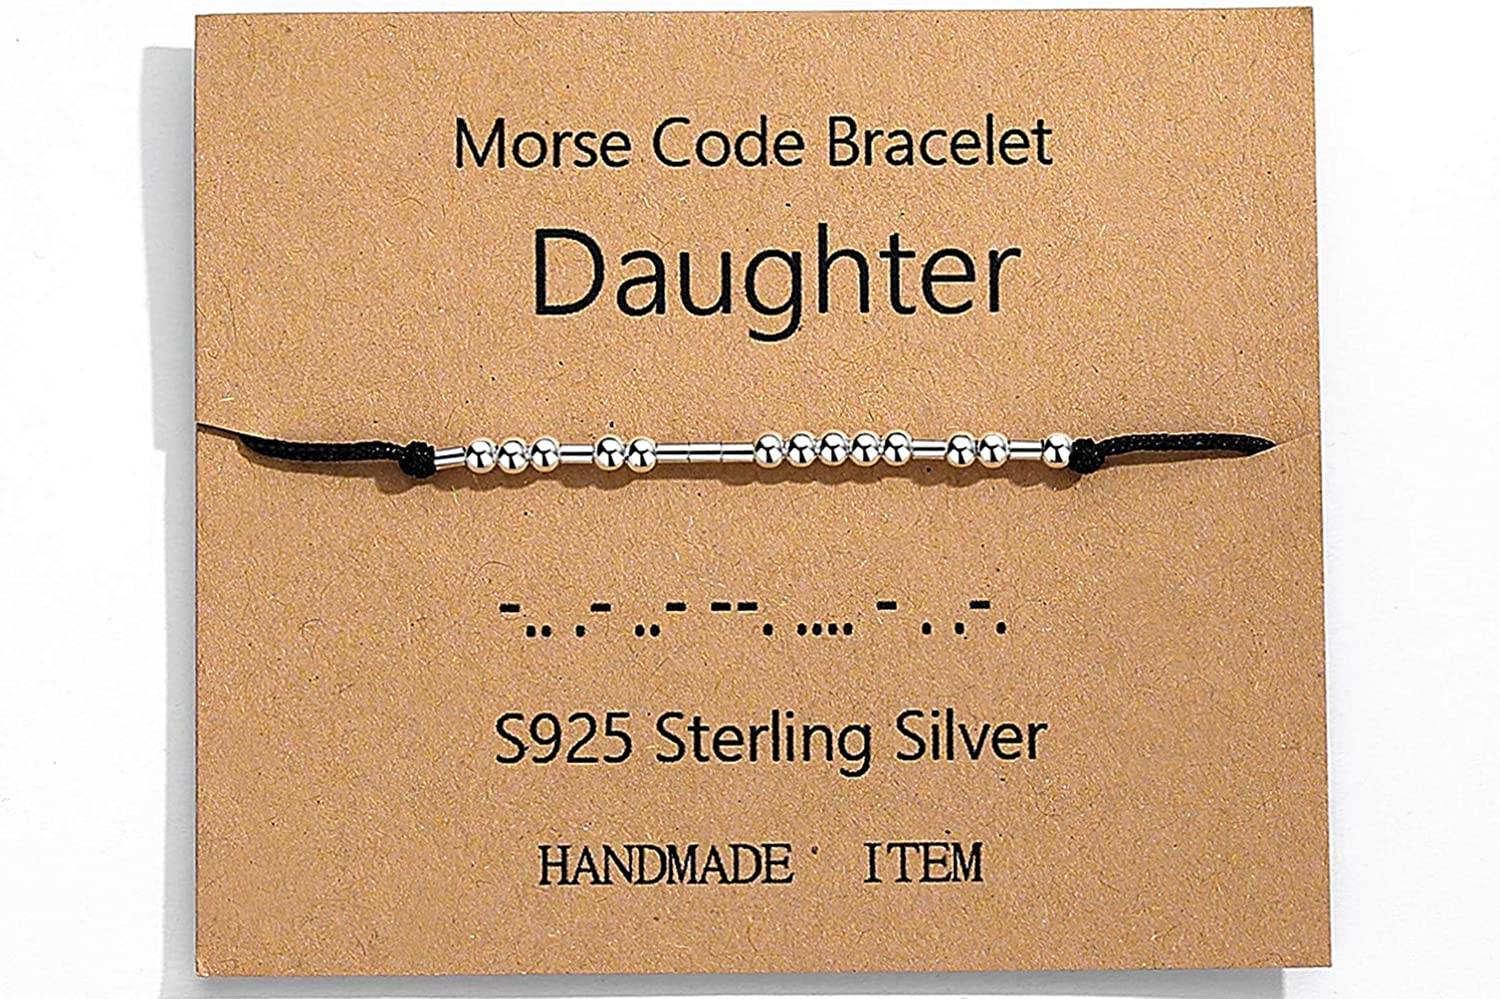 ASELFAD Morse Code Bracelets for Women Sterling Silver Beads on Cord Hidden Message Adjustable Friendship Bracelet Unique Gifts for Her